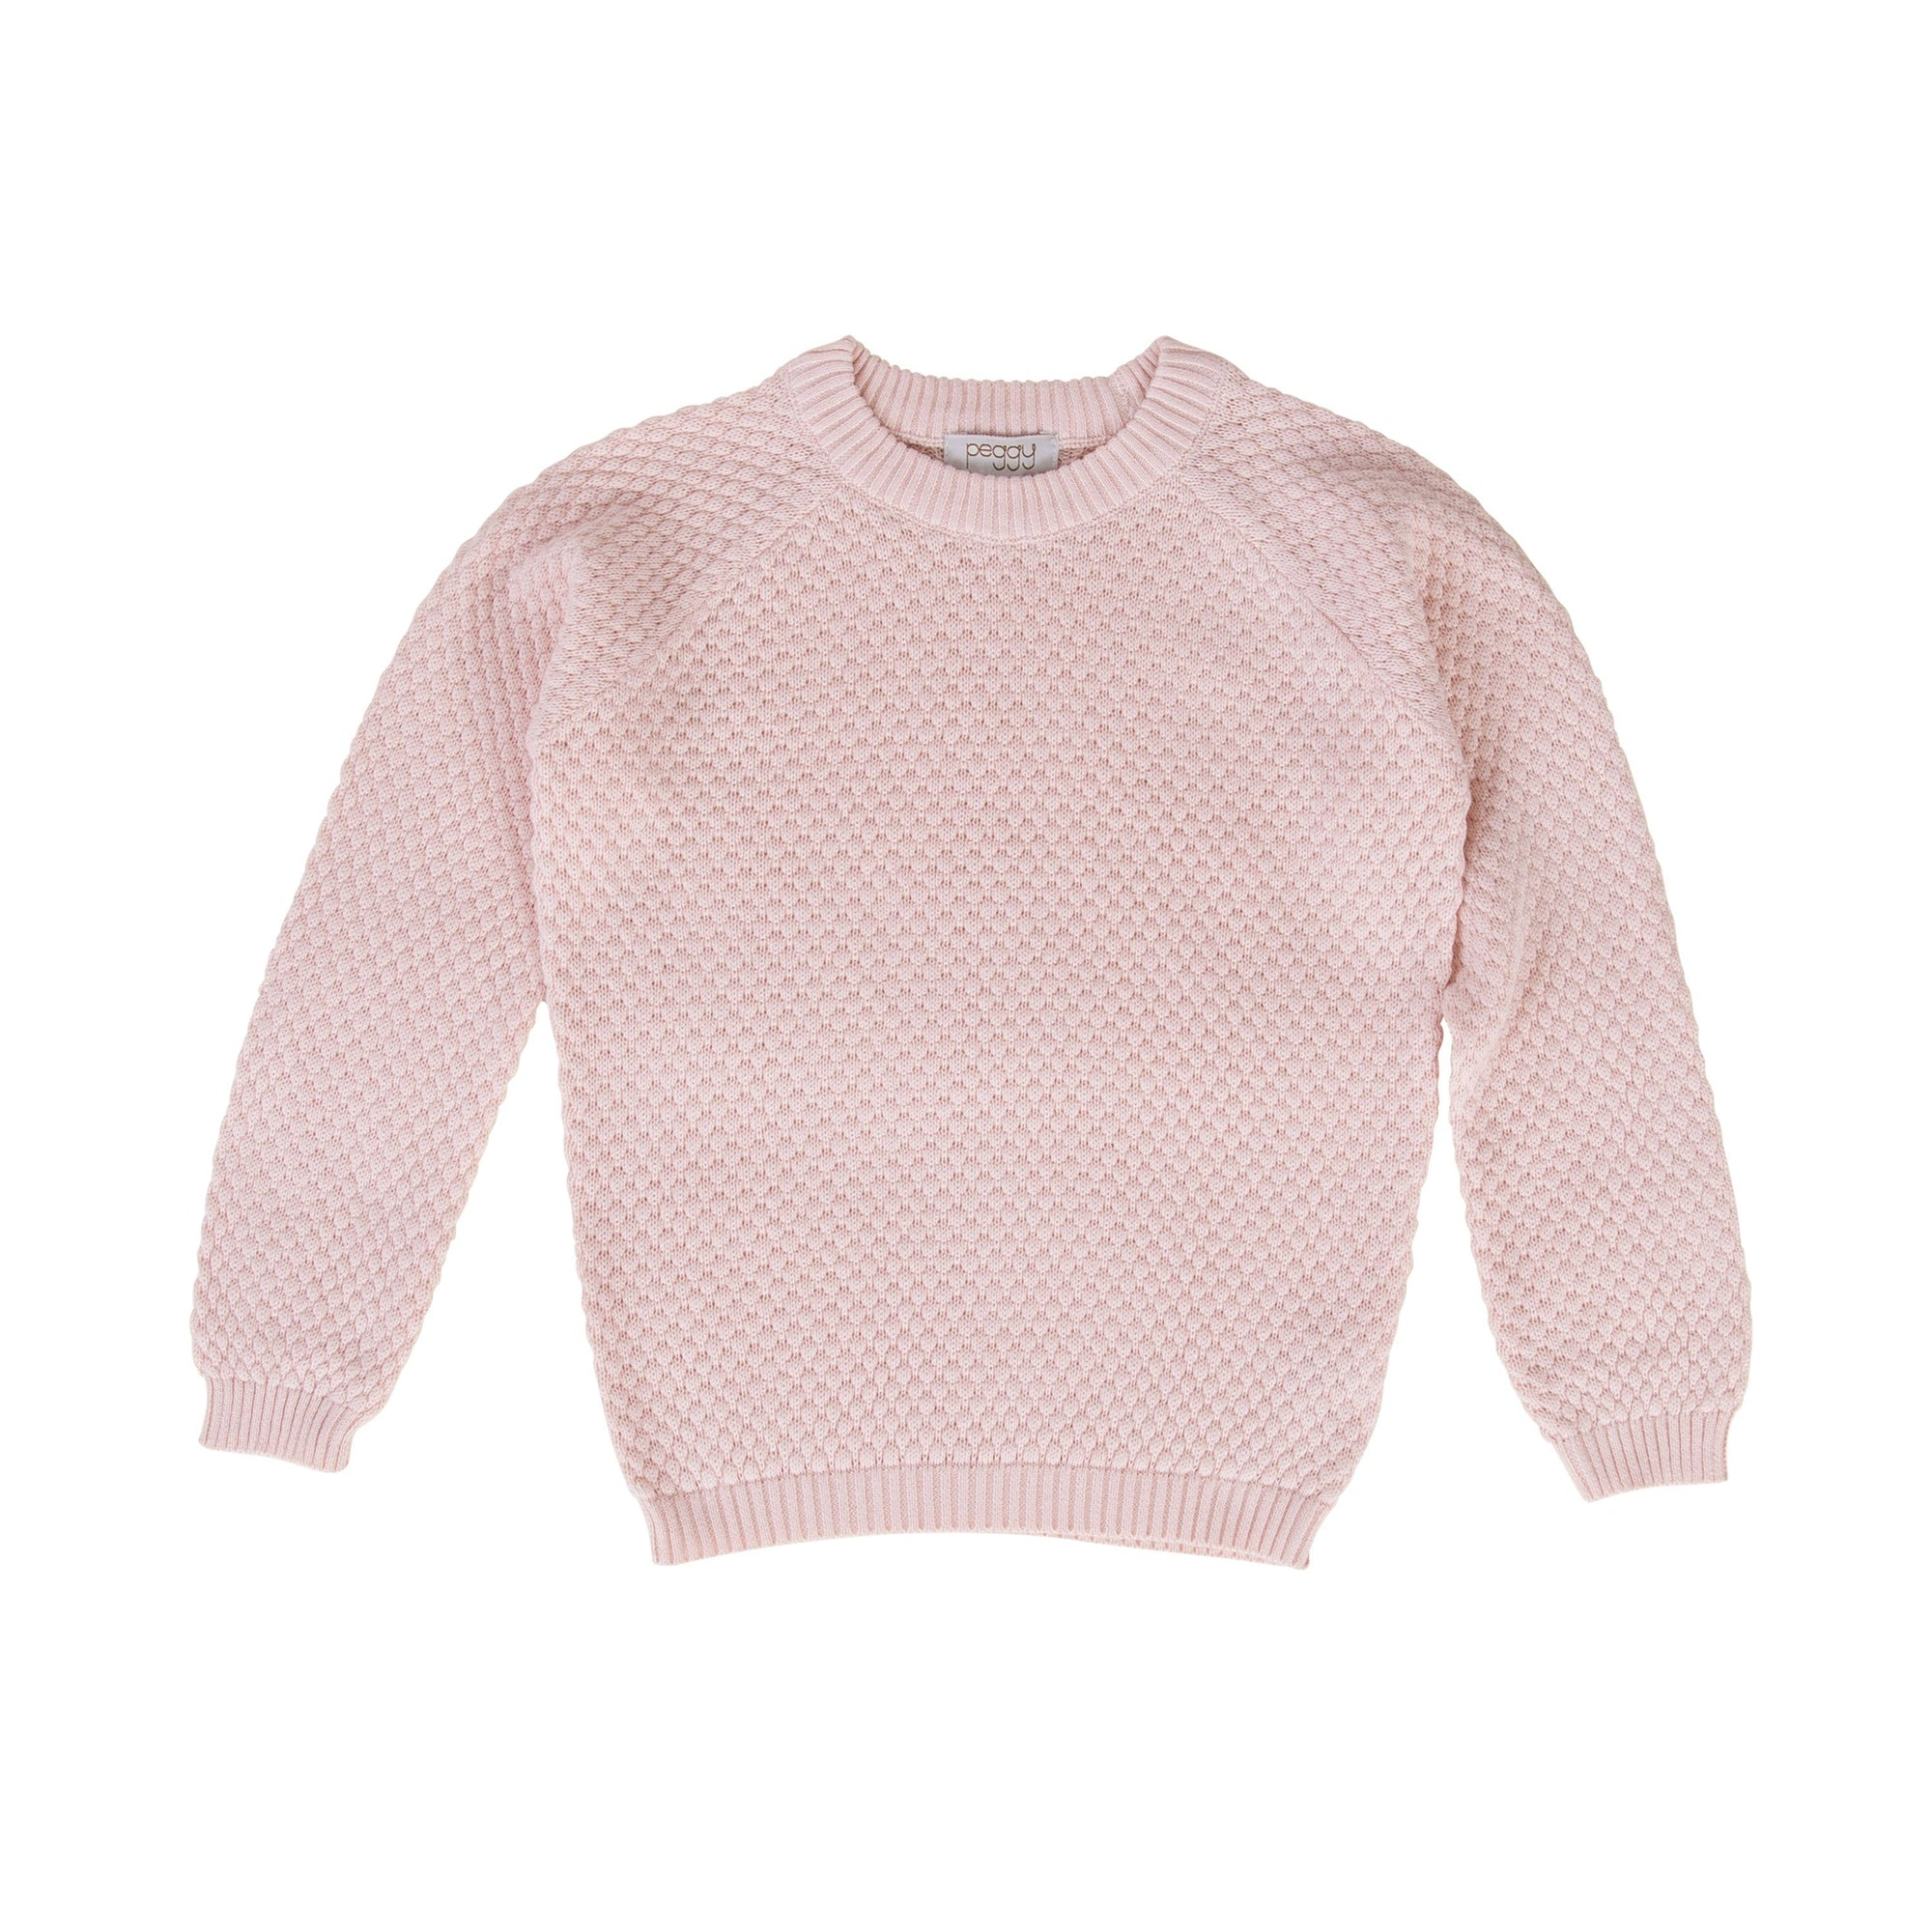 Juniper Knit Jumper